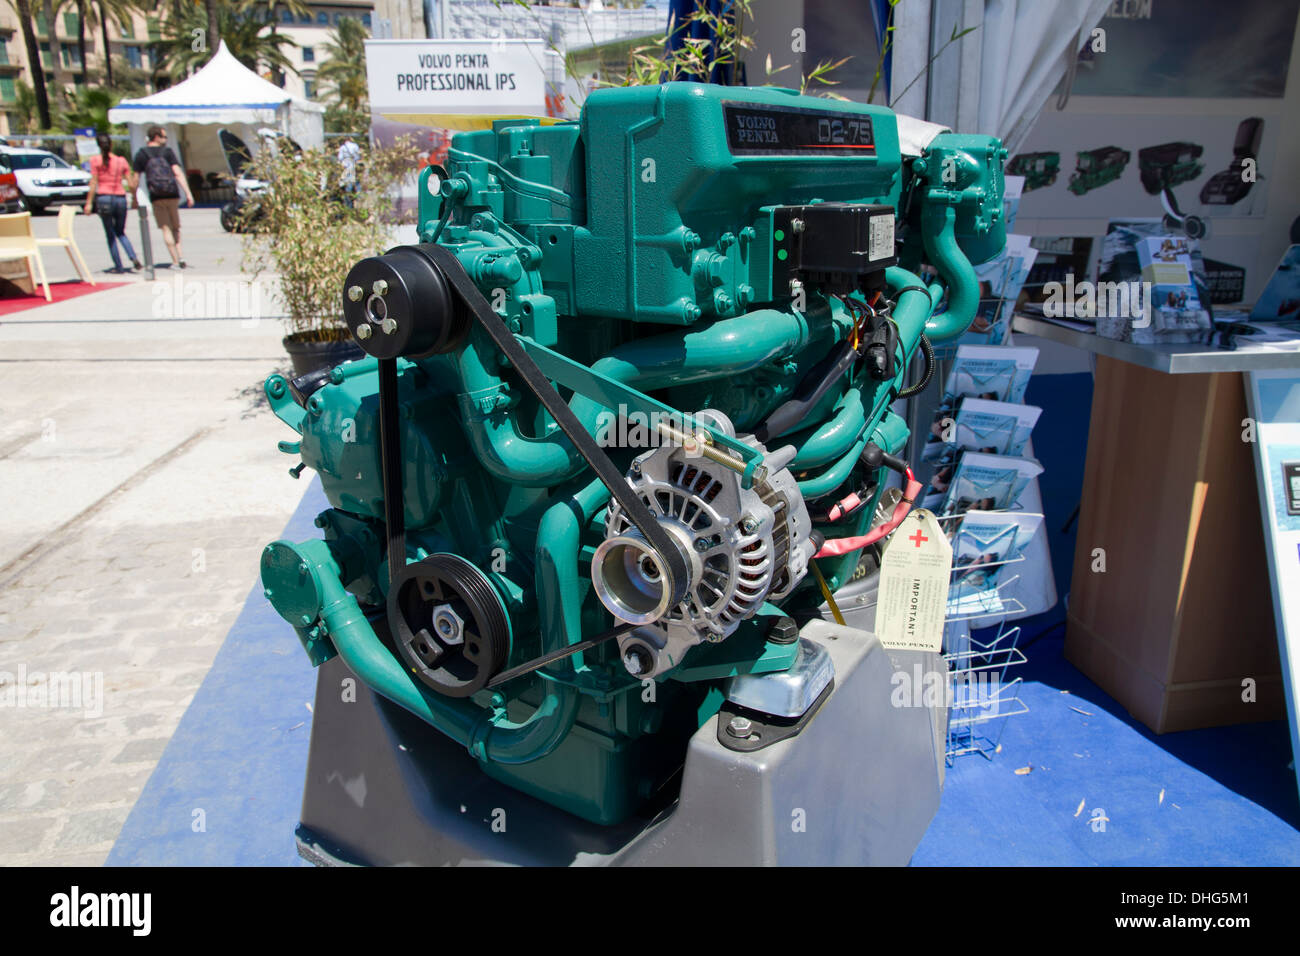 Marine Diesel Stock Photos Images Alamy Volvo Penta Fuel Filter Wrench Engine Industry Image